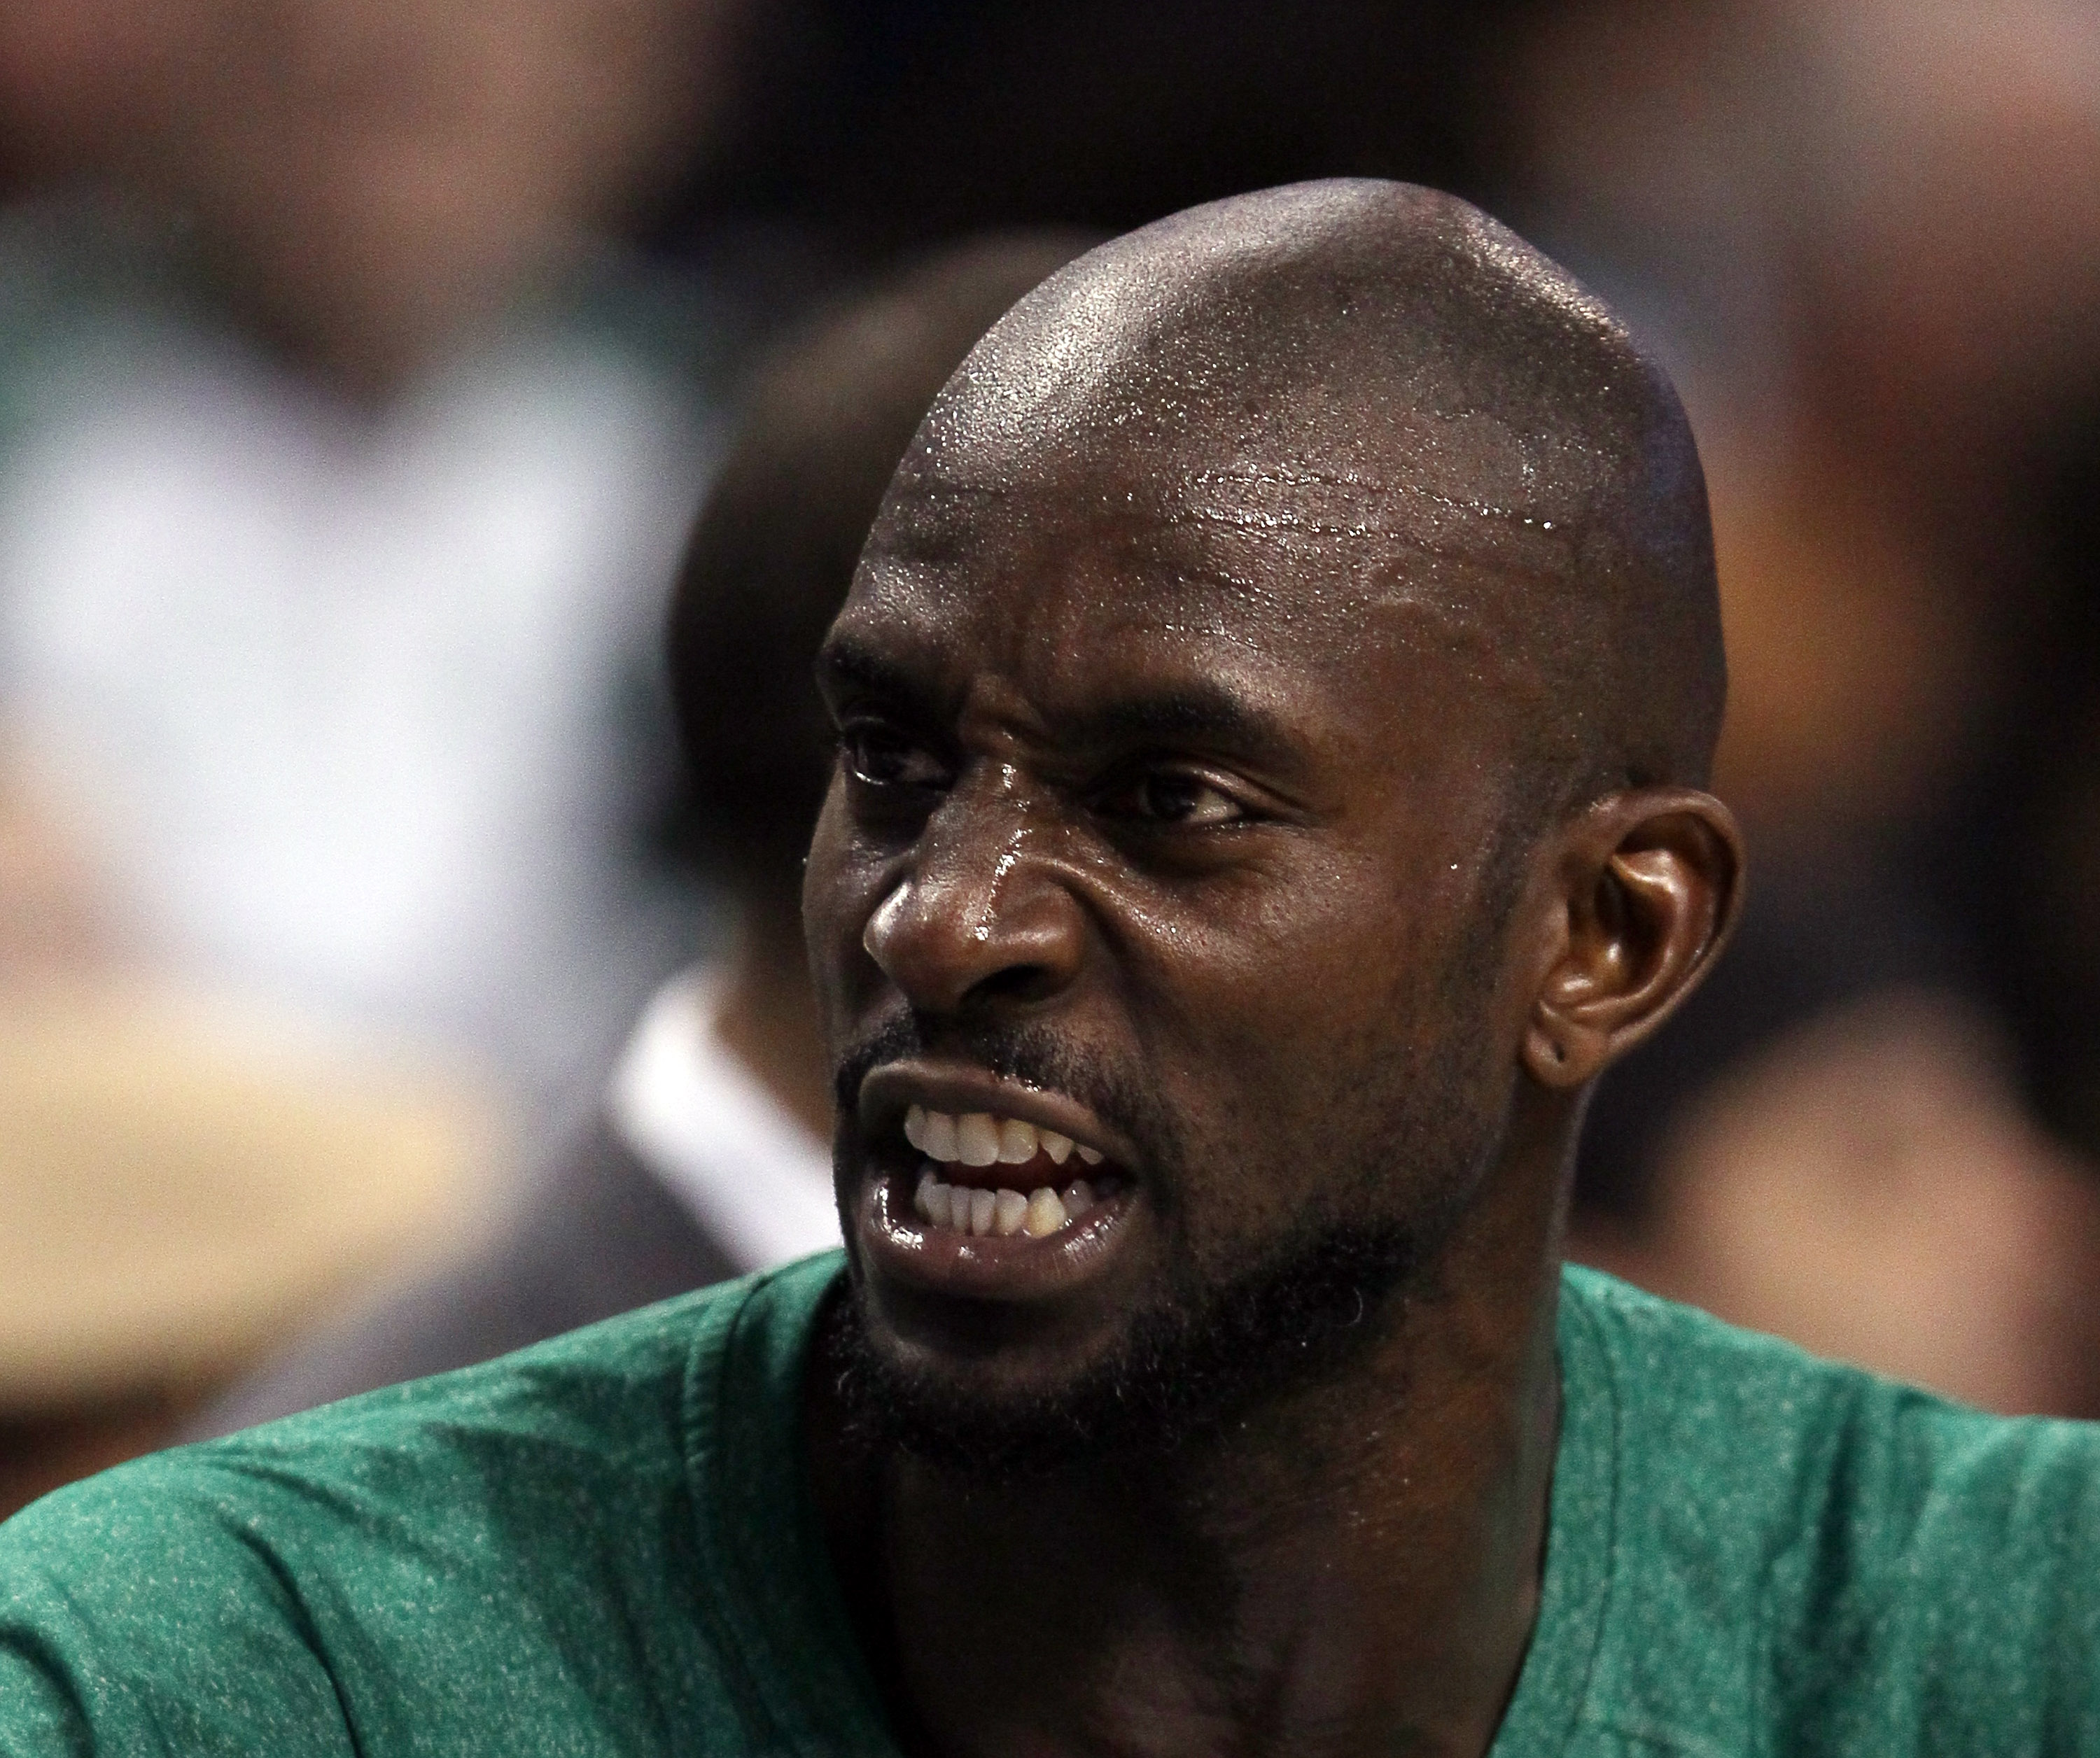 BOSTON, MA - DECEMBER 16:  Kevin Garnett #5 of the Boston Celtics talks on the bench in the first half against the Atlanta Hawks on December 16, 2010 at the TD Garden in Boston, Massachusetts. NOTE TO USER: User expressly acknowledges and agrees that, by